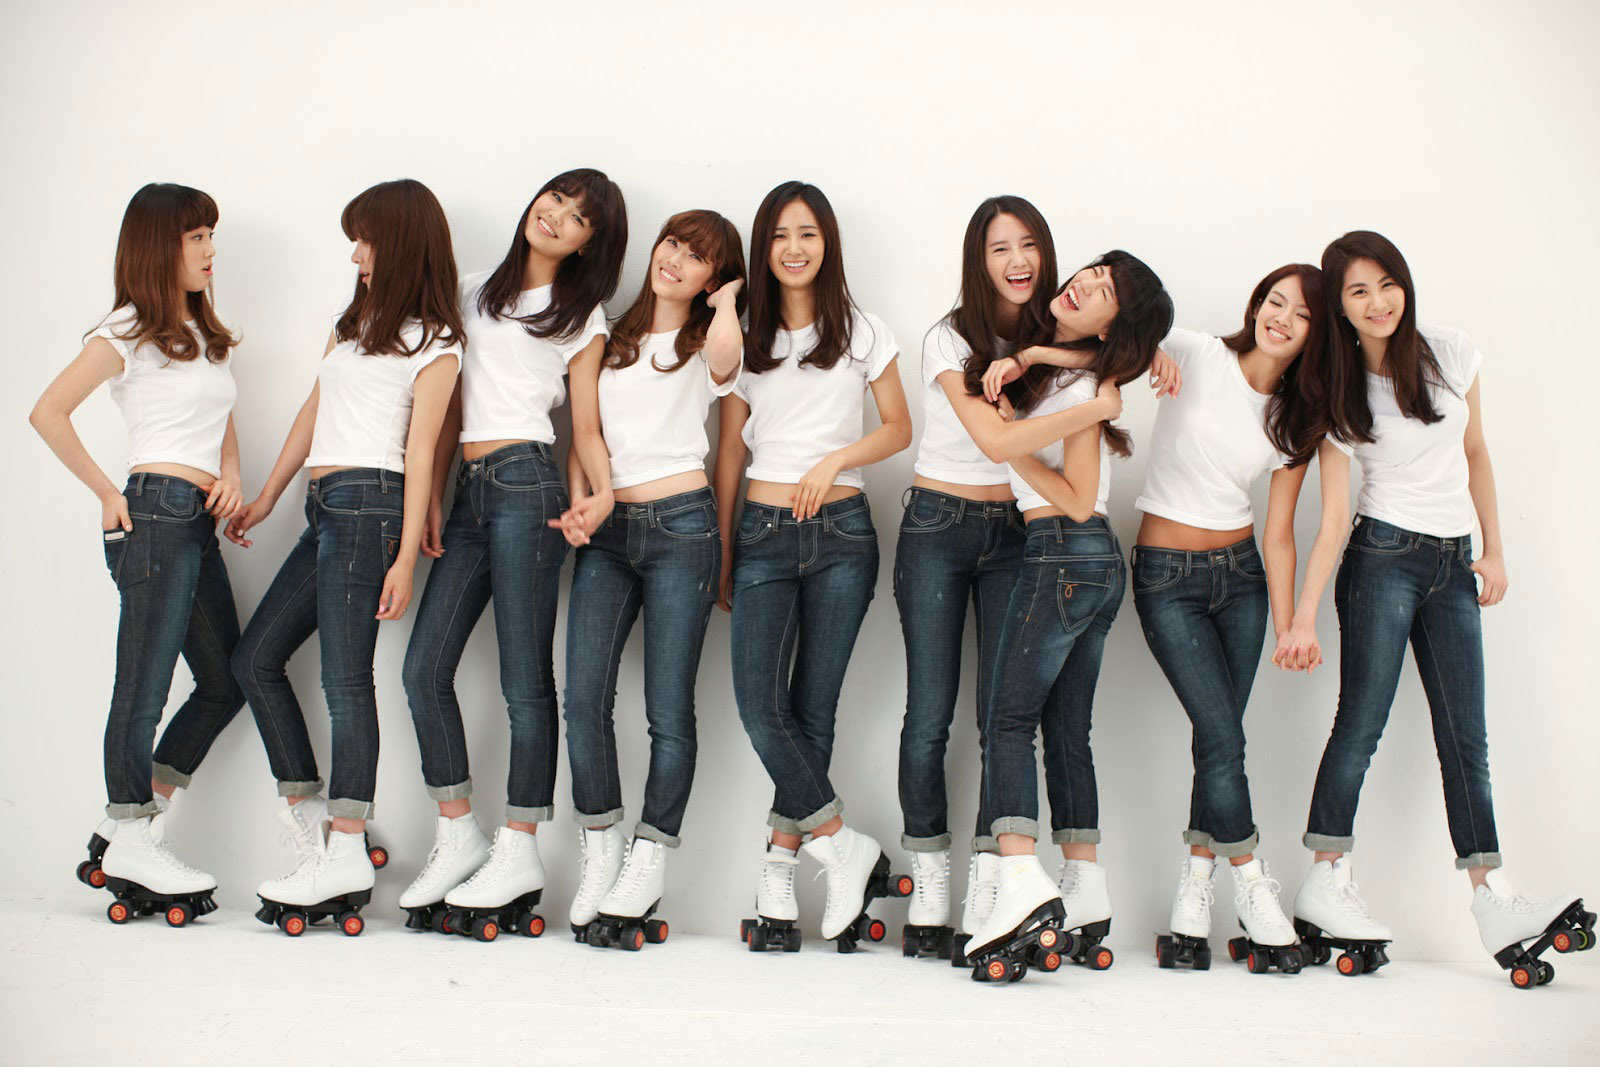 SNSD Gee concept picture